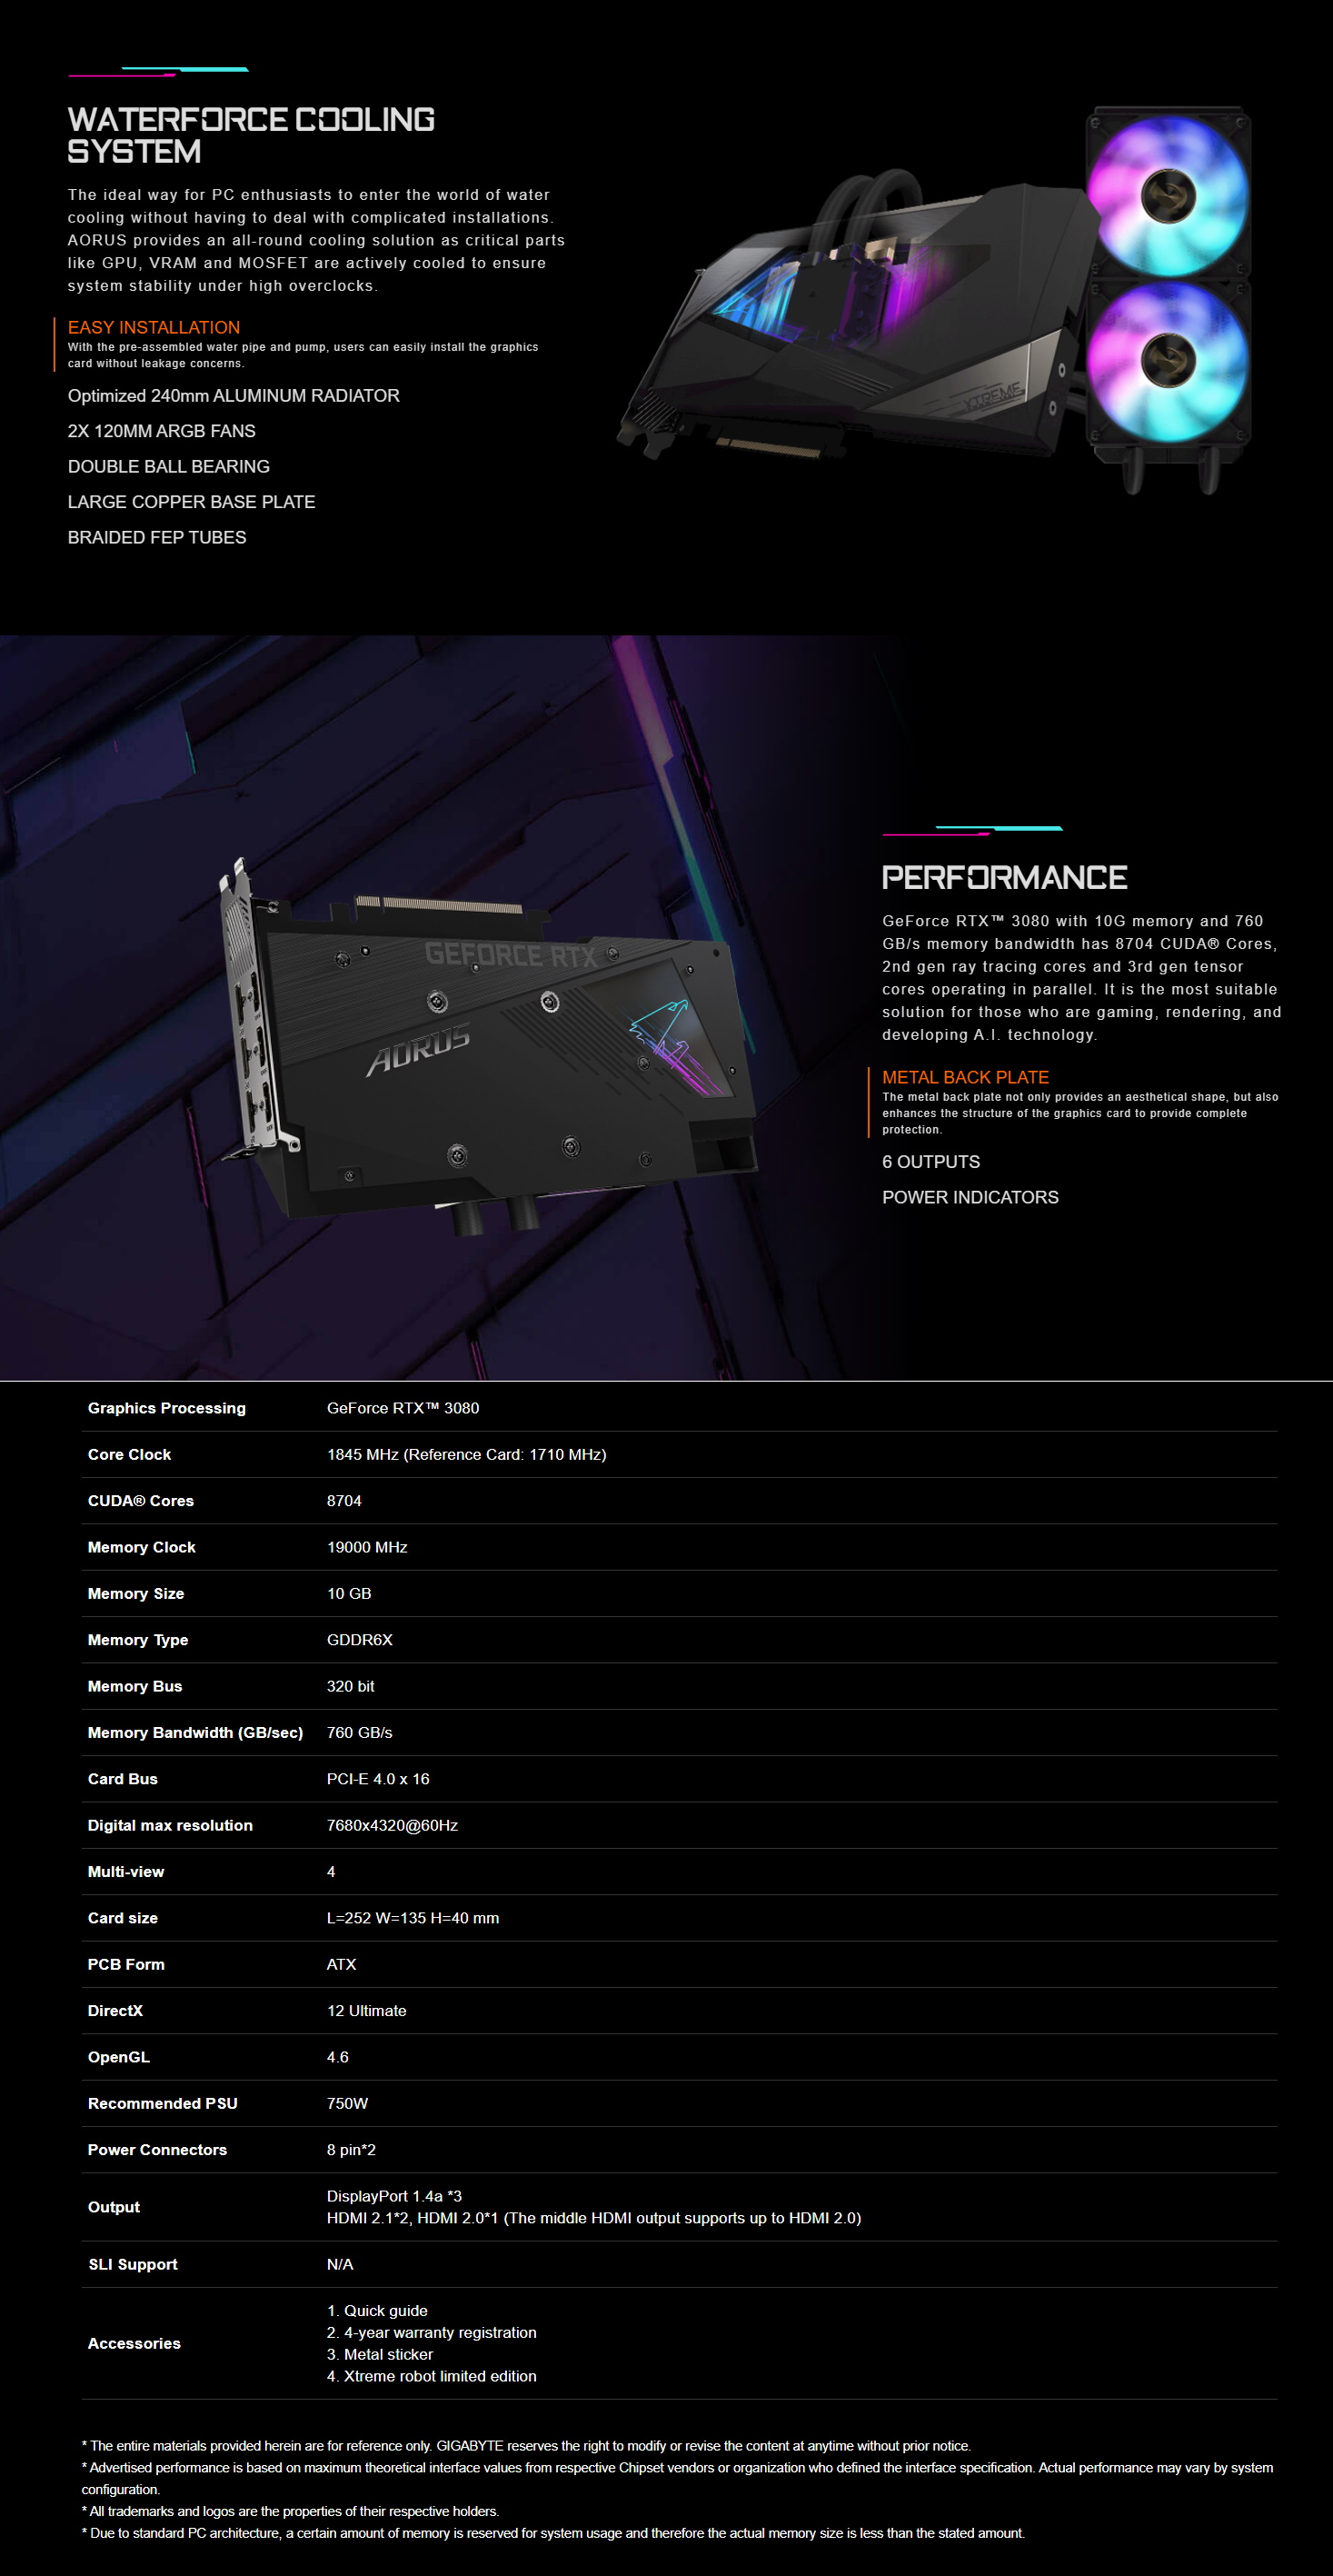 A large marketing image providing additional information about the product Gigabyte GeForce RTX3080 Xtreme Waterforce 10GB GDDR6X - Additional alt info not provided